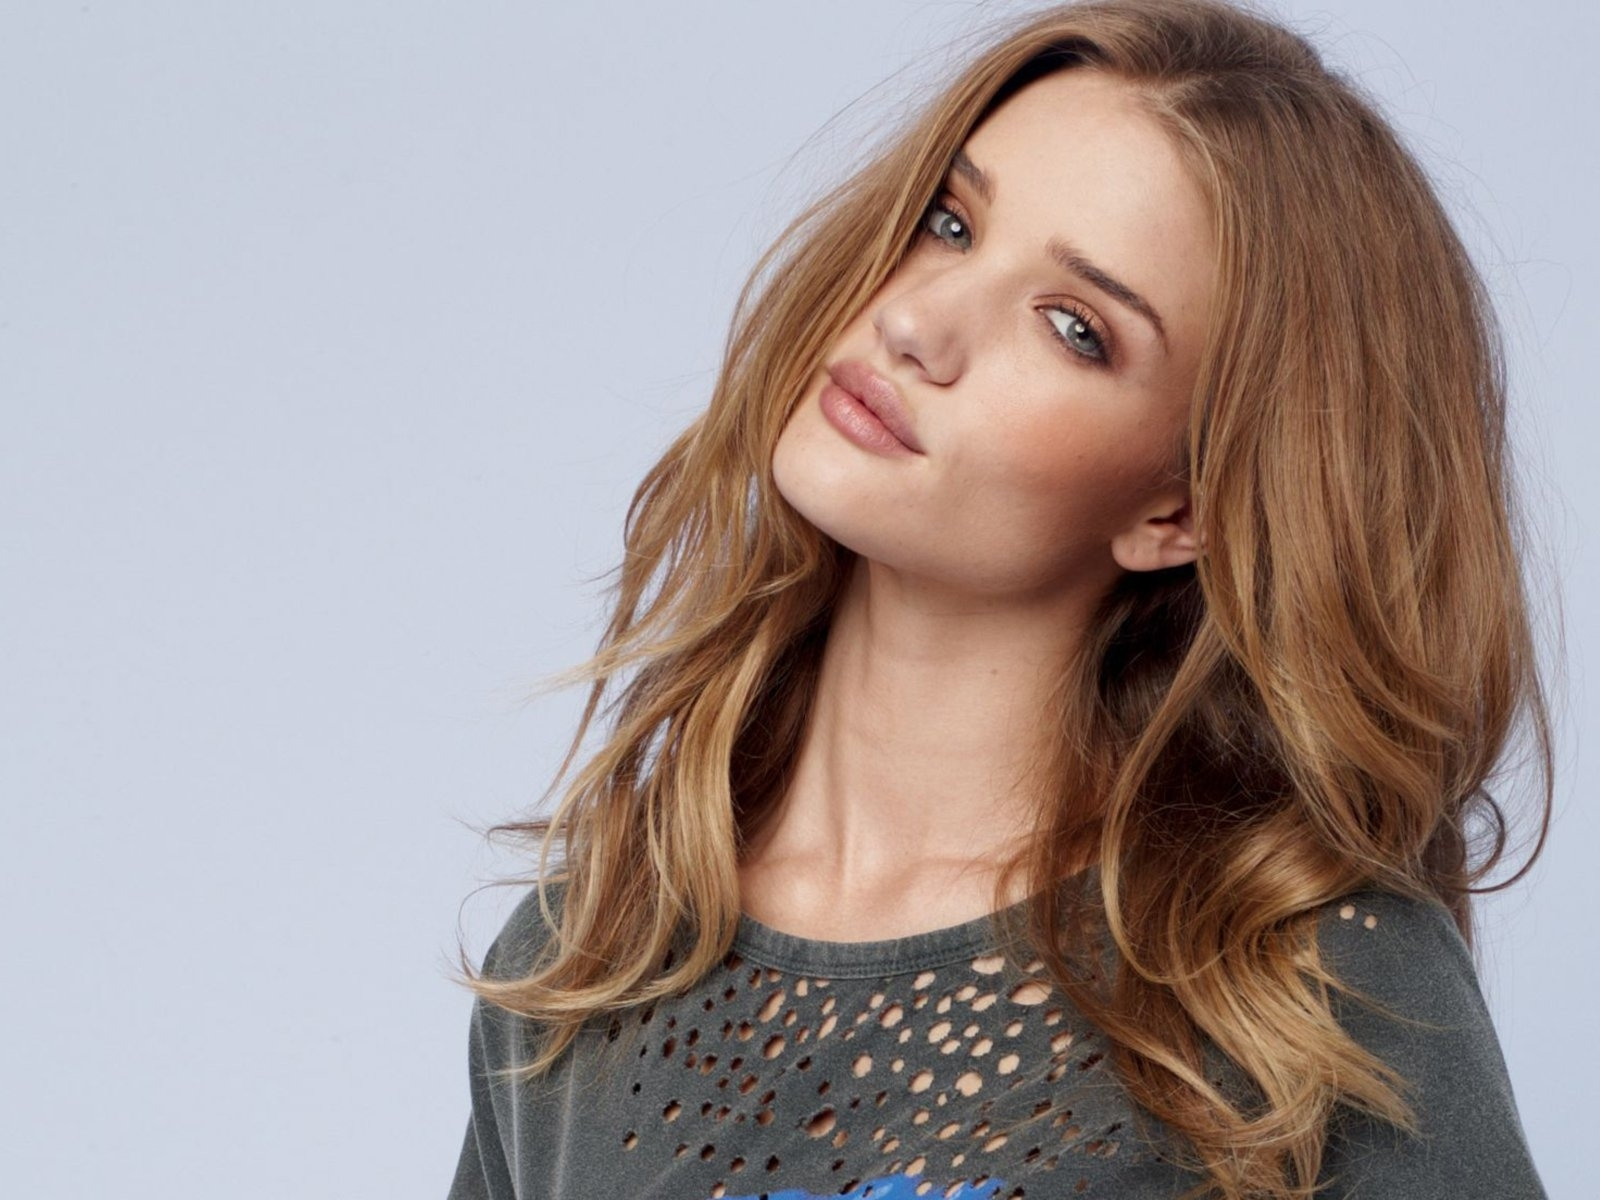 35 Best Haircuts For Manageable Thick Hair Of Any Length inside Haircut For Thick Unruly Hair